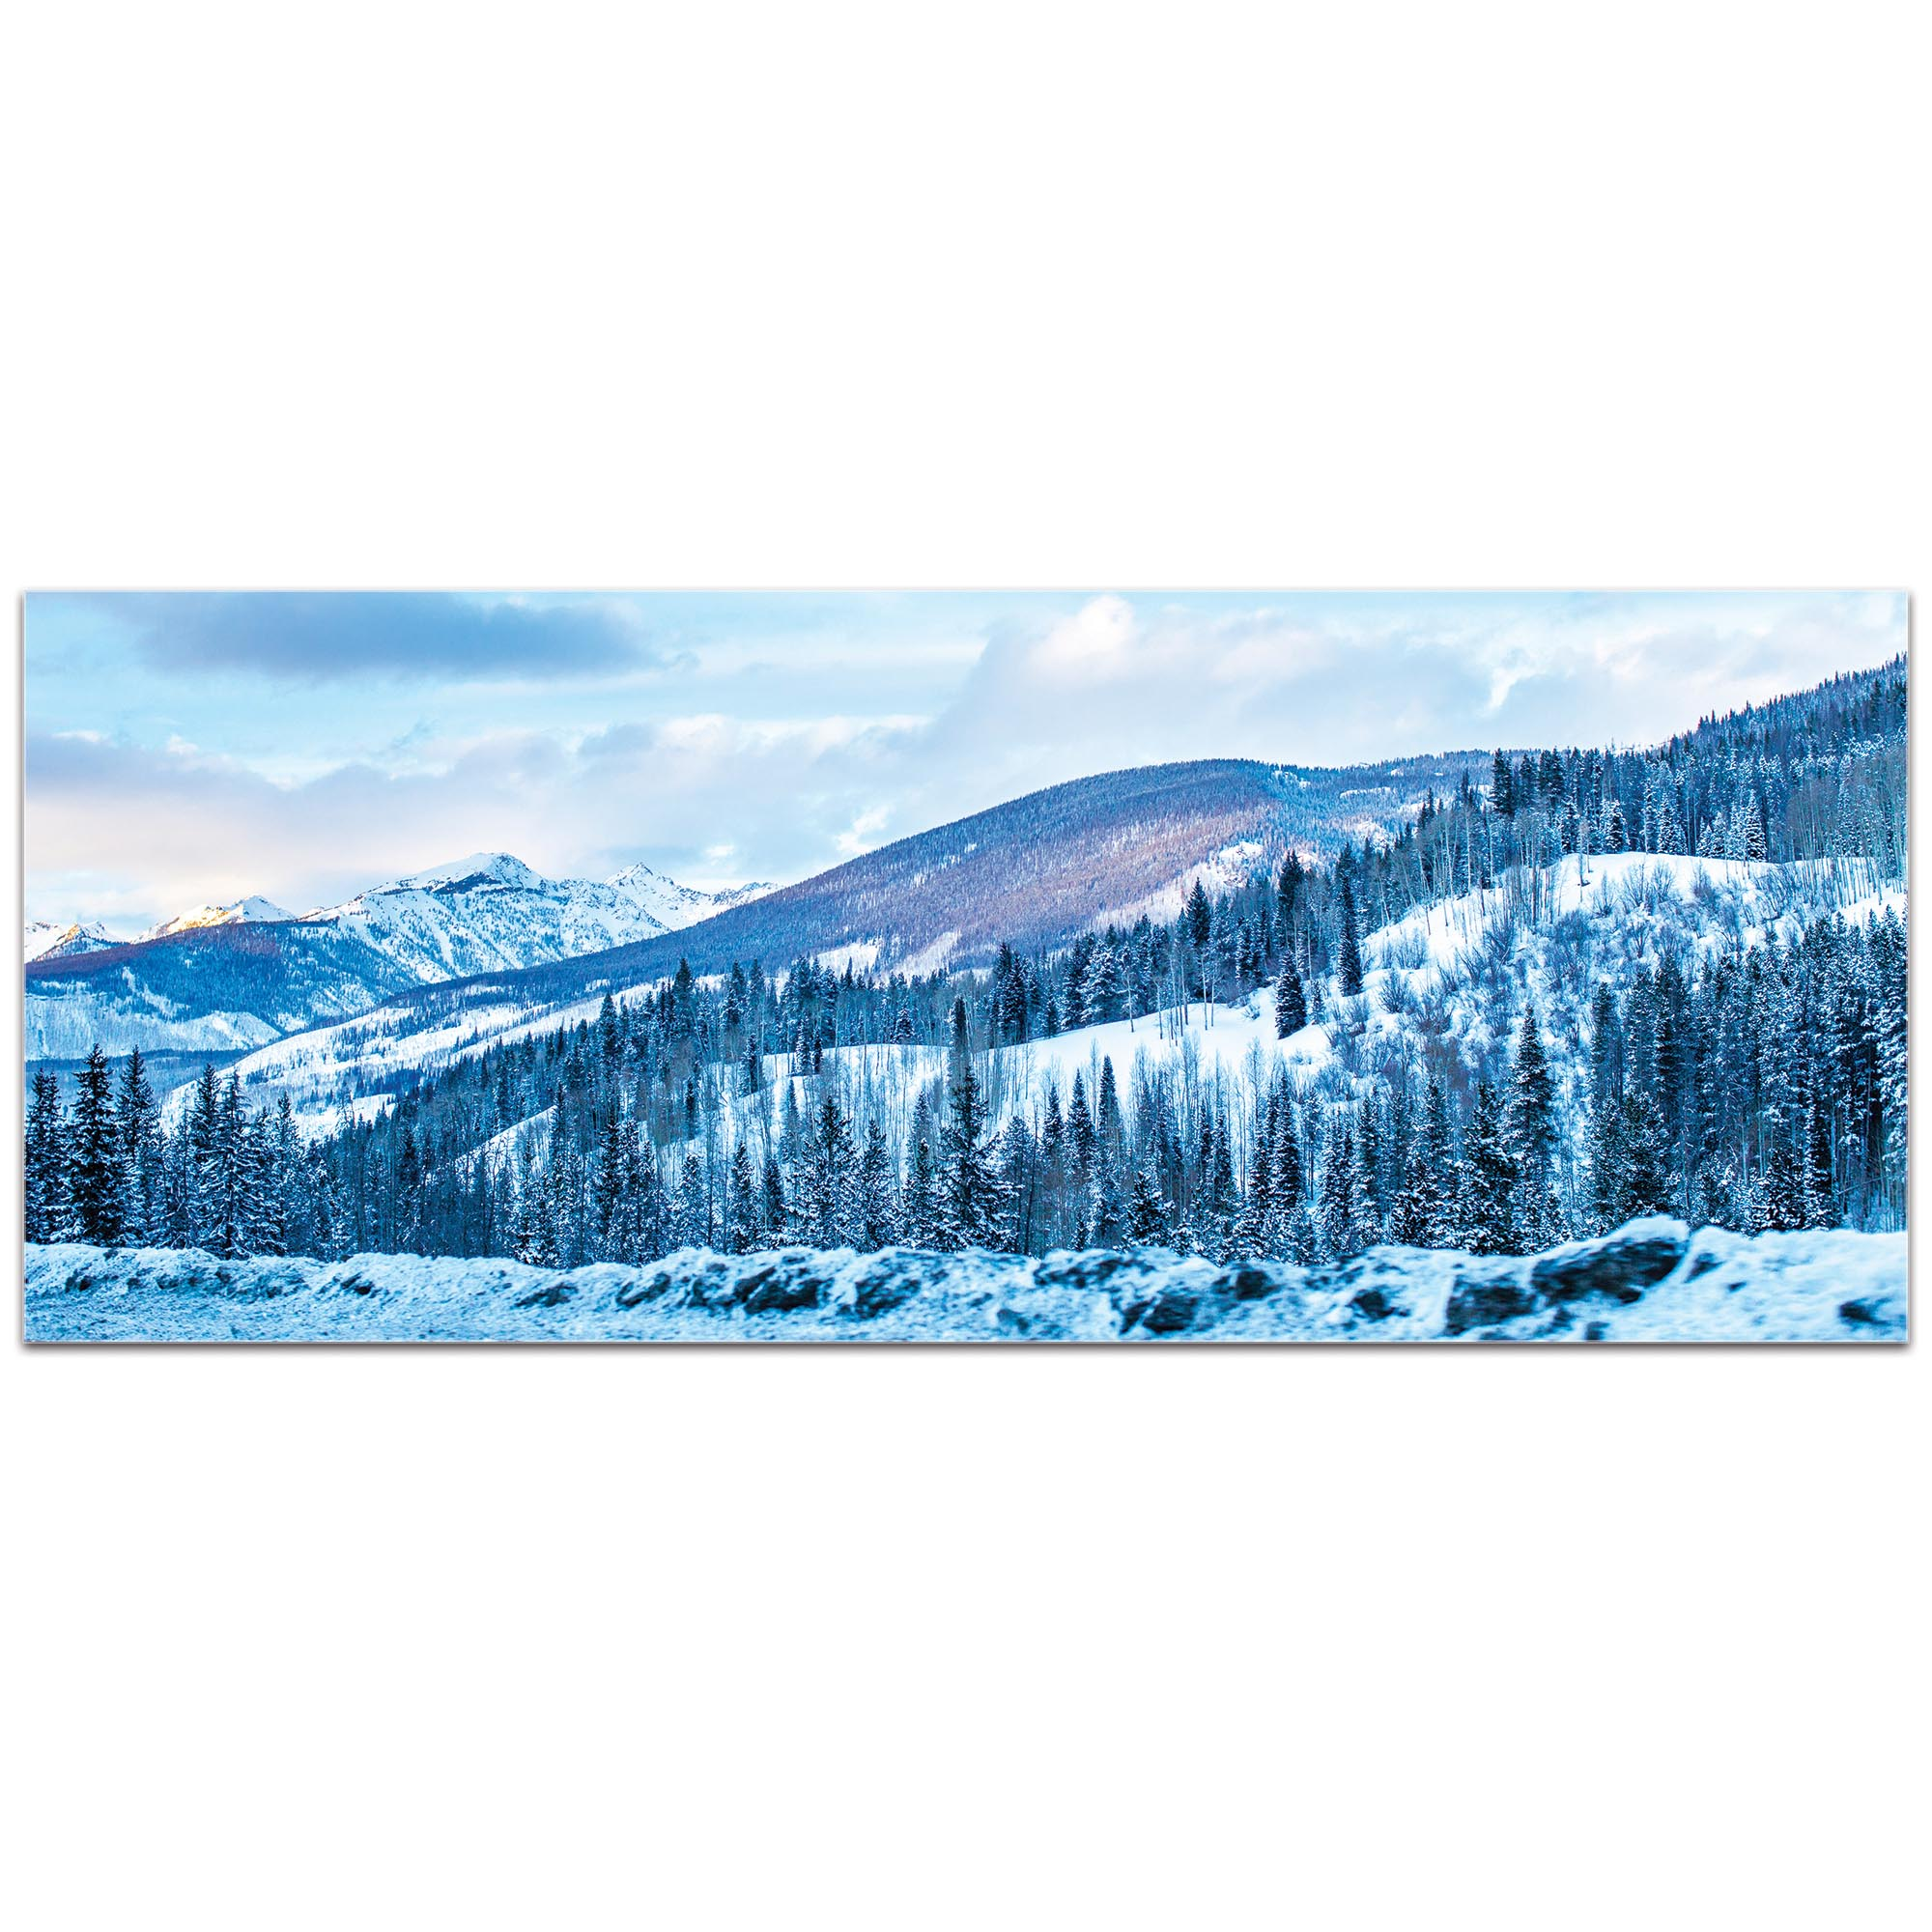 Landscape Photography 'The Slopes' - Winter Scene Art on Metal or Plexiglass - Image 2